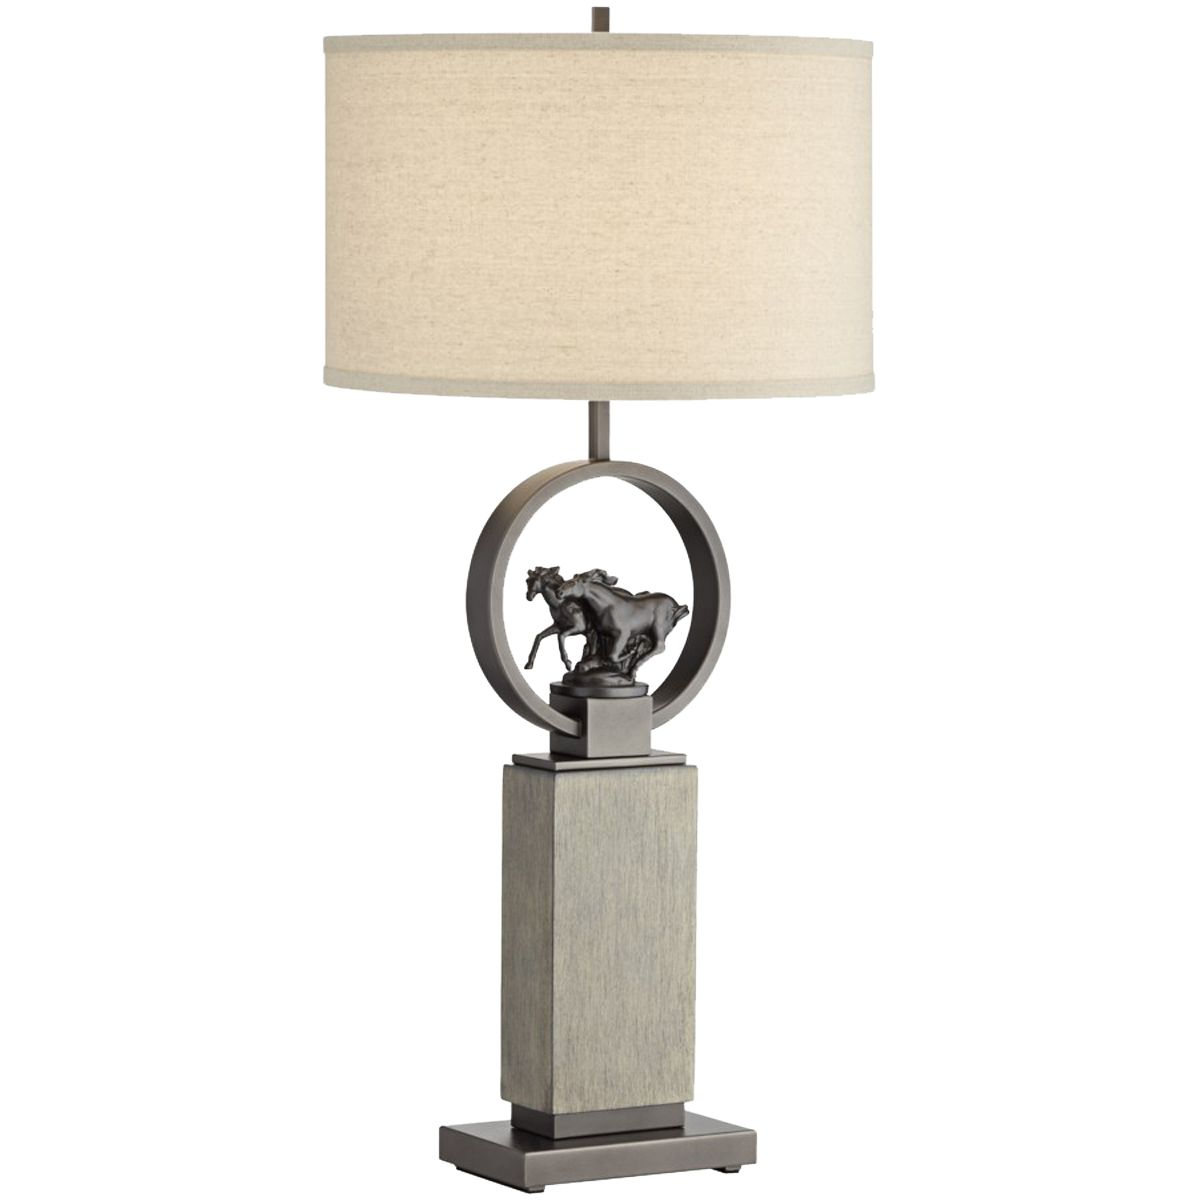 Galloping Pair Table Lamp